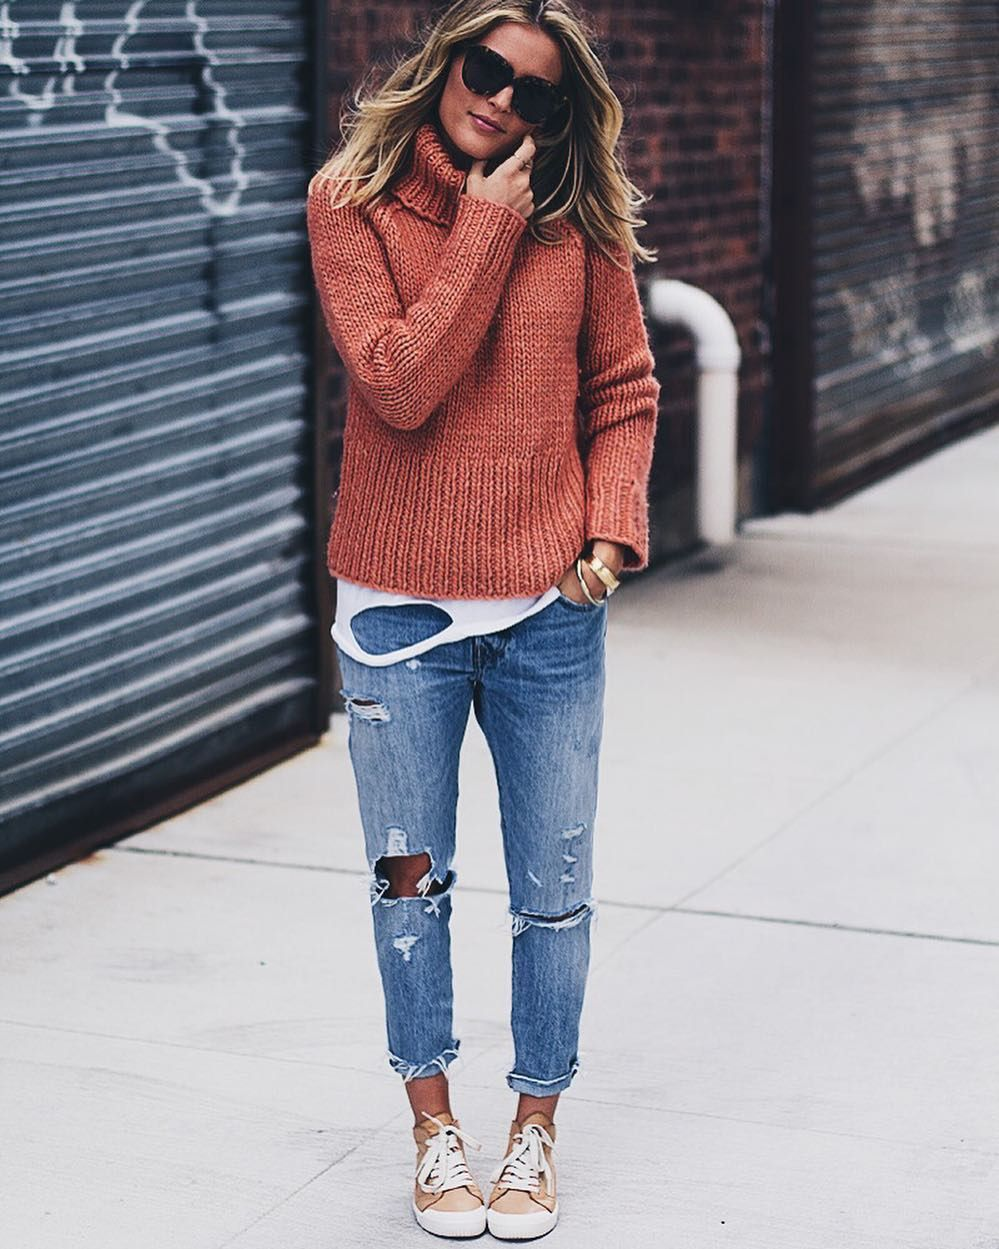 Ripped jeans flannel shirt  New post on LM iftMfZuoG  f a s h i o n  Pinterest